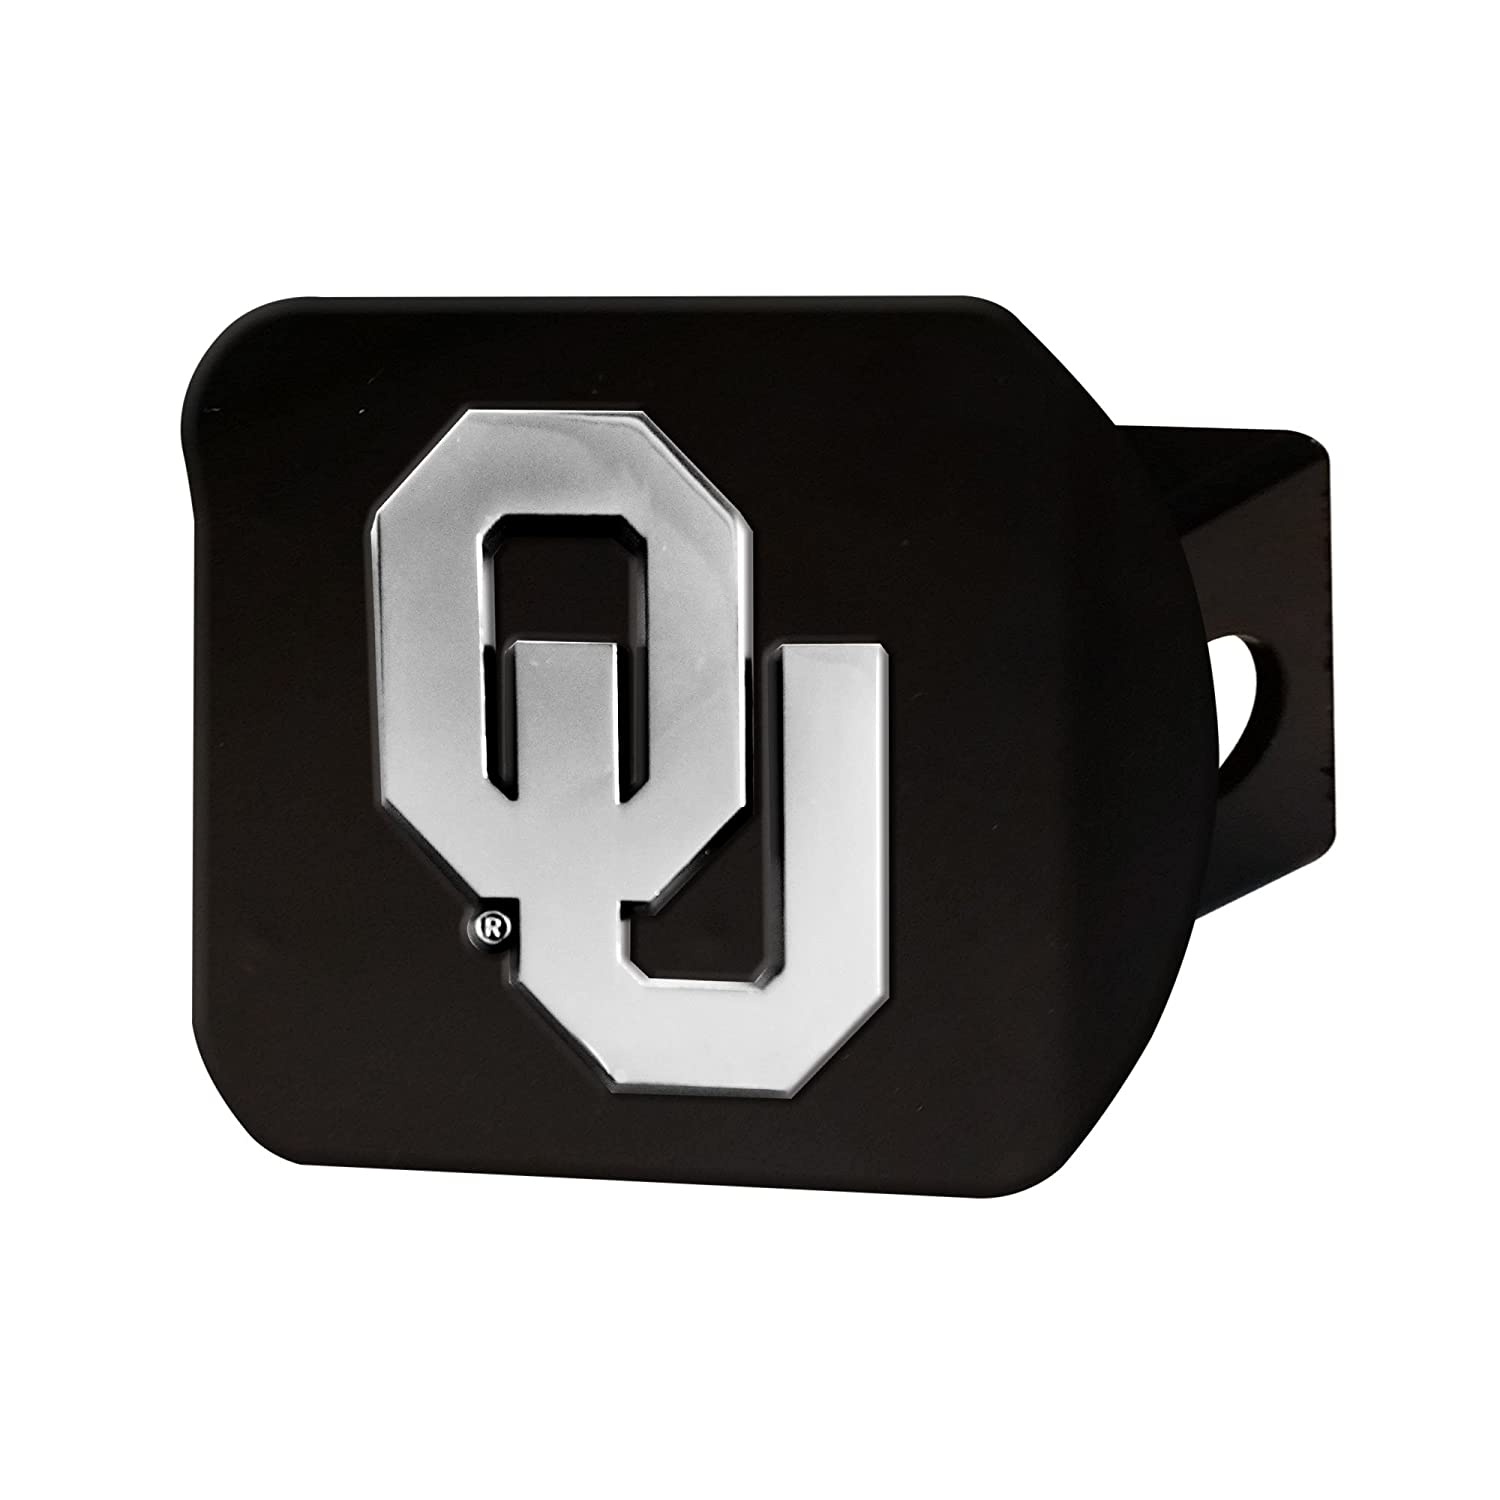 FANMATS 21044 Team Color 3.4x4 Oklahoma Black Hitch Cover